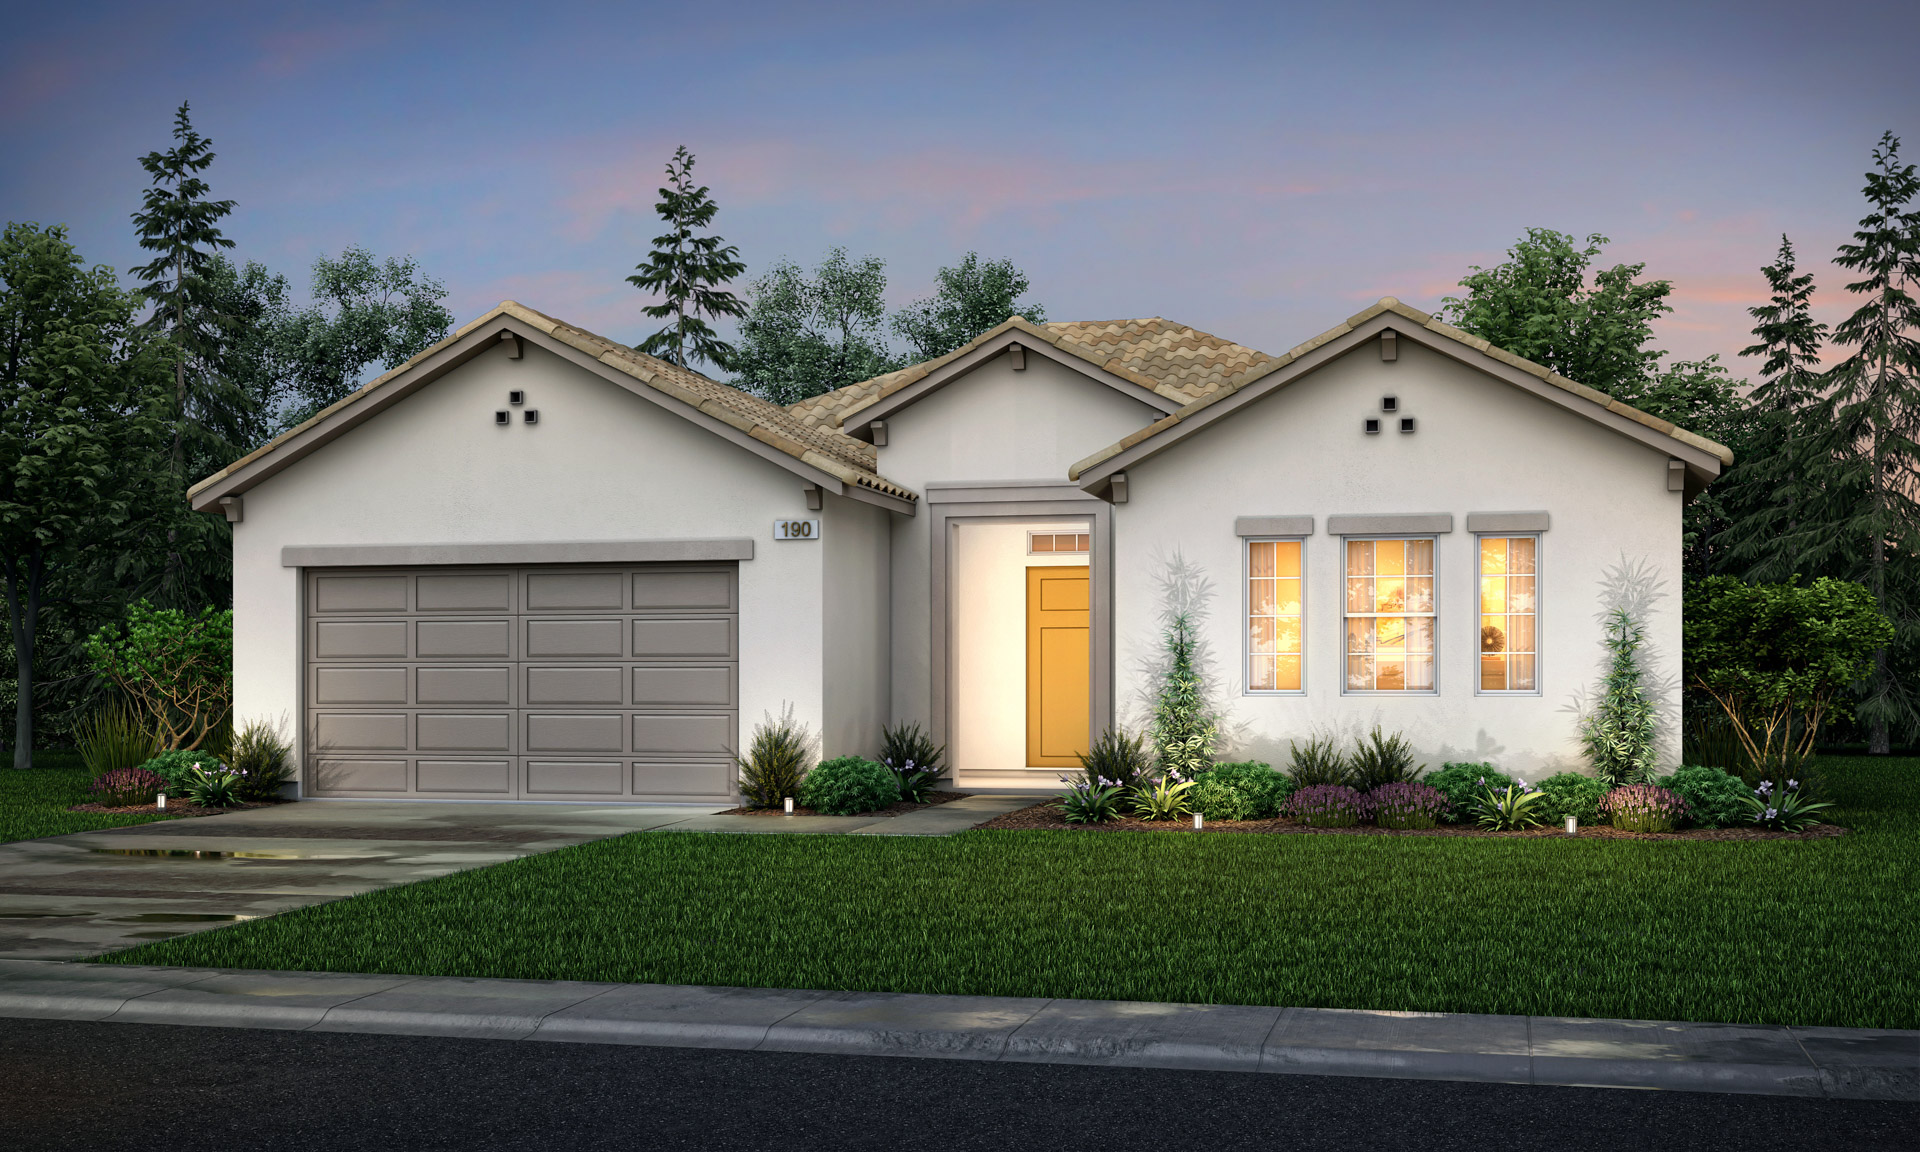 Meet The Brand New  Modern Spanish Exterior Elevation From DeYoung Properties!